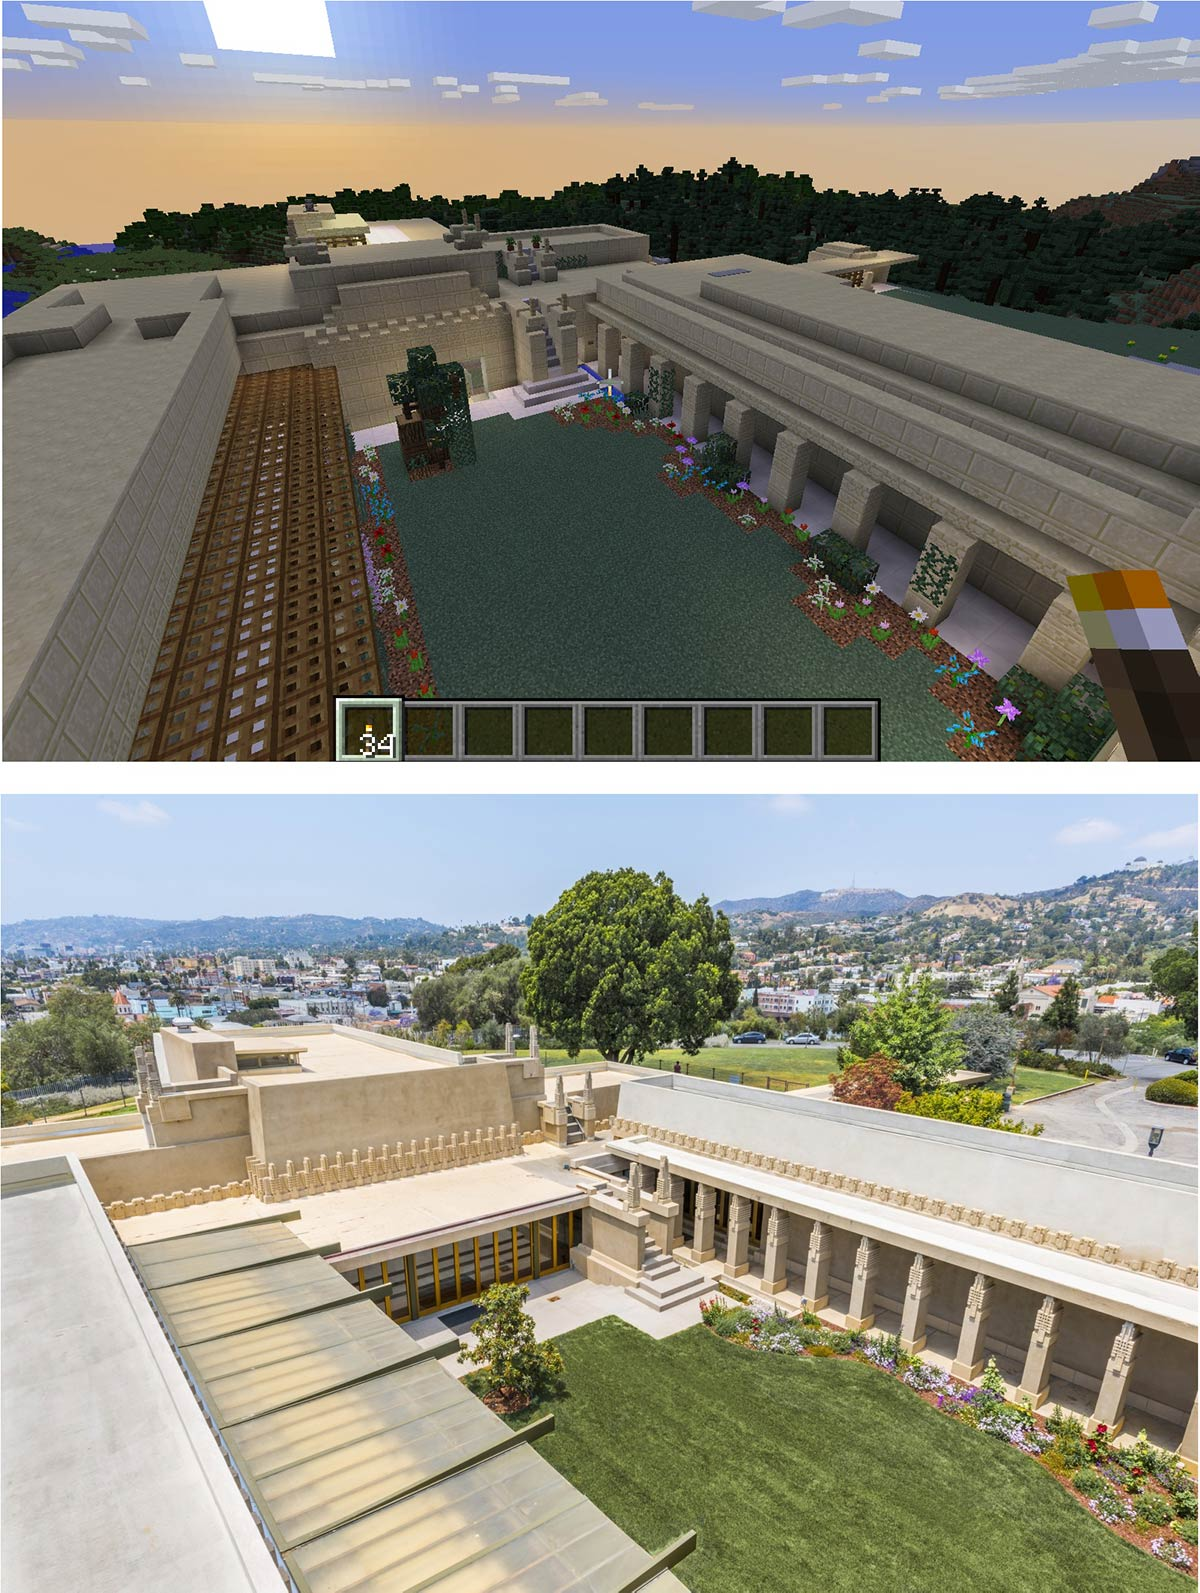 A side-by-side of the original and the Wrightcraft recreation of Frank Lloyd Wright's Hollyhock House's inner courtyard | Kate Hedin FLW AB s9